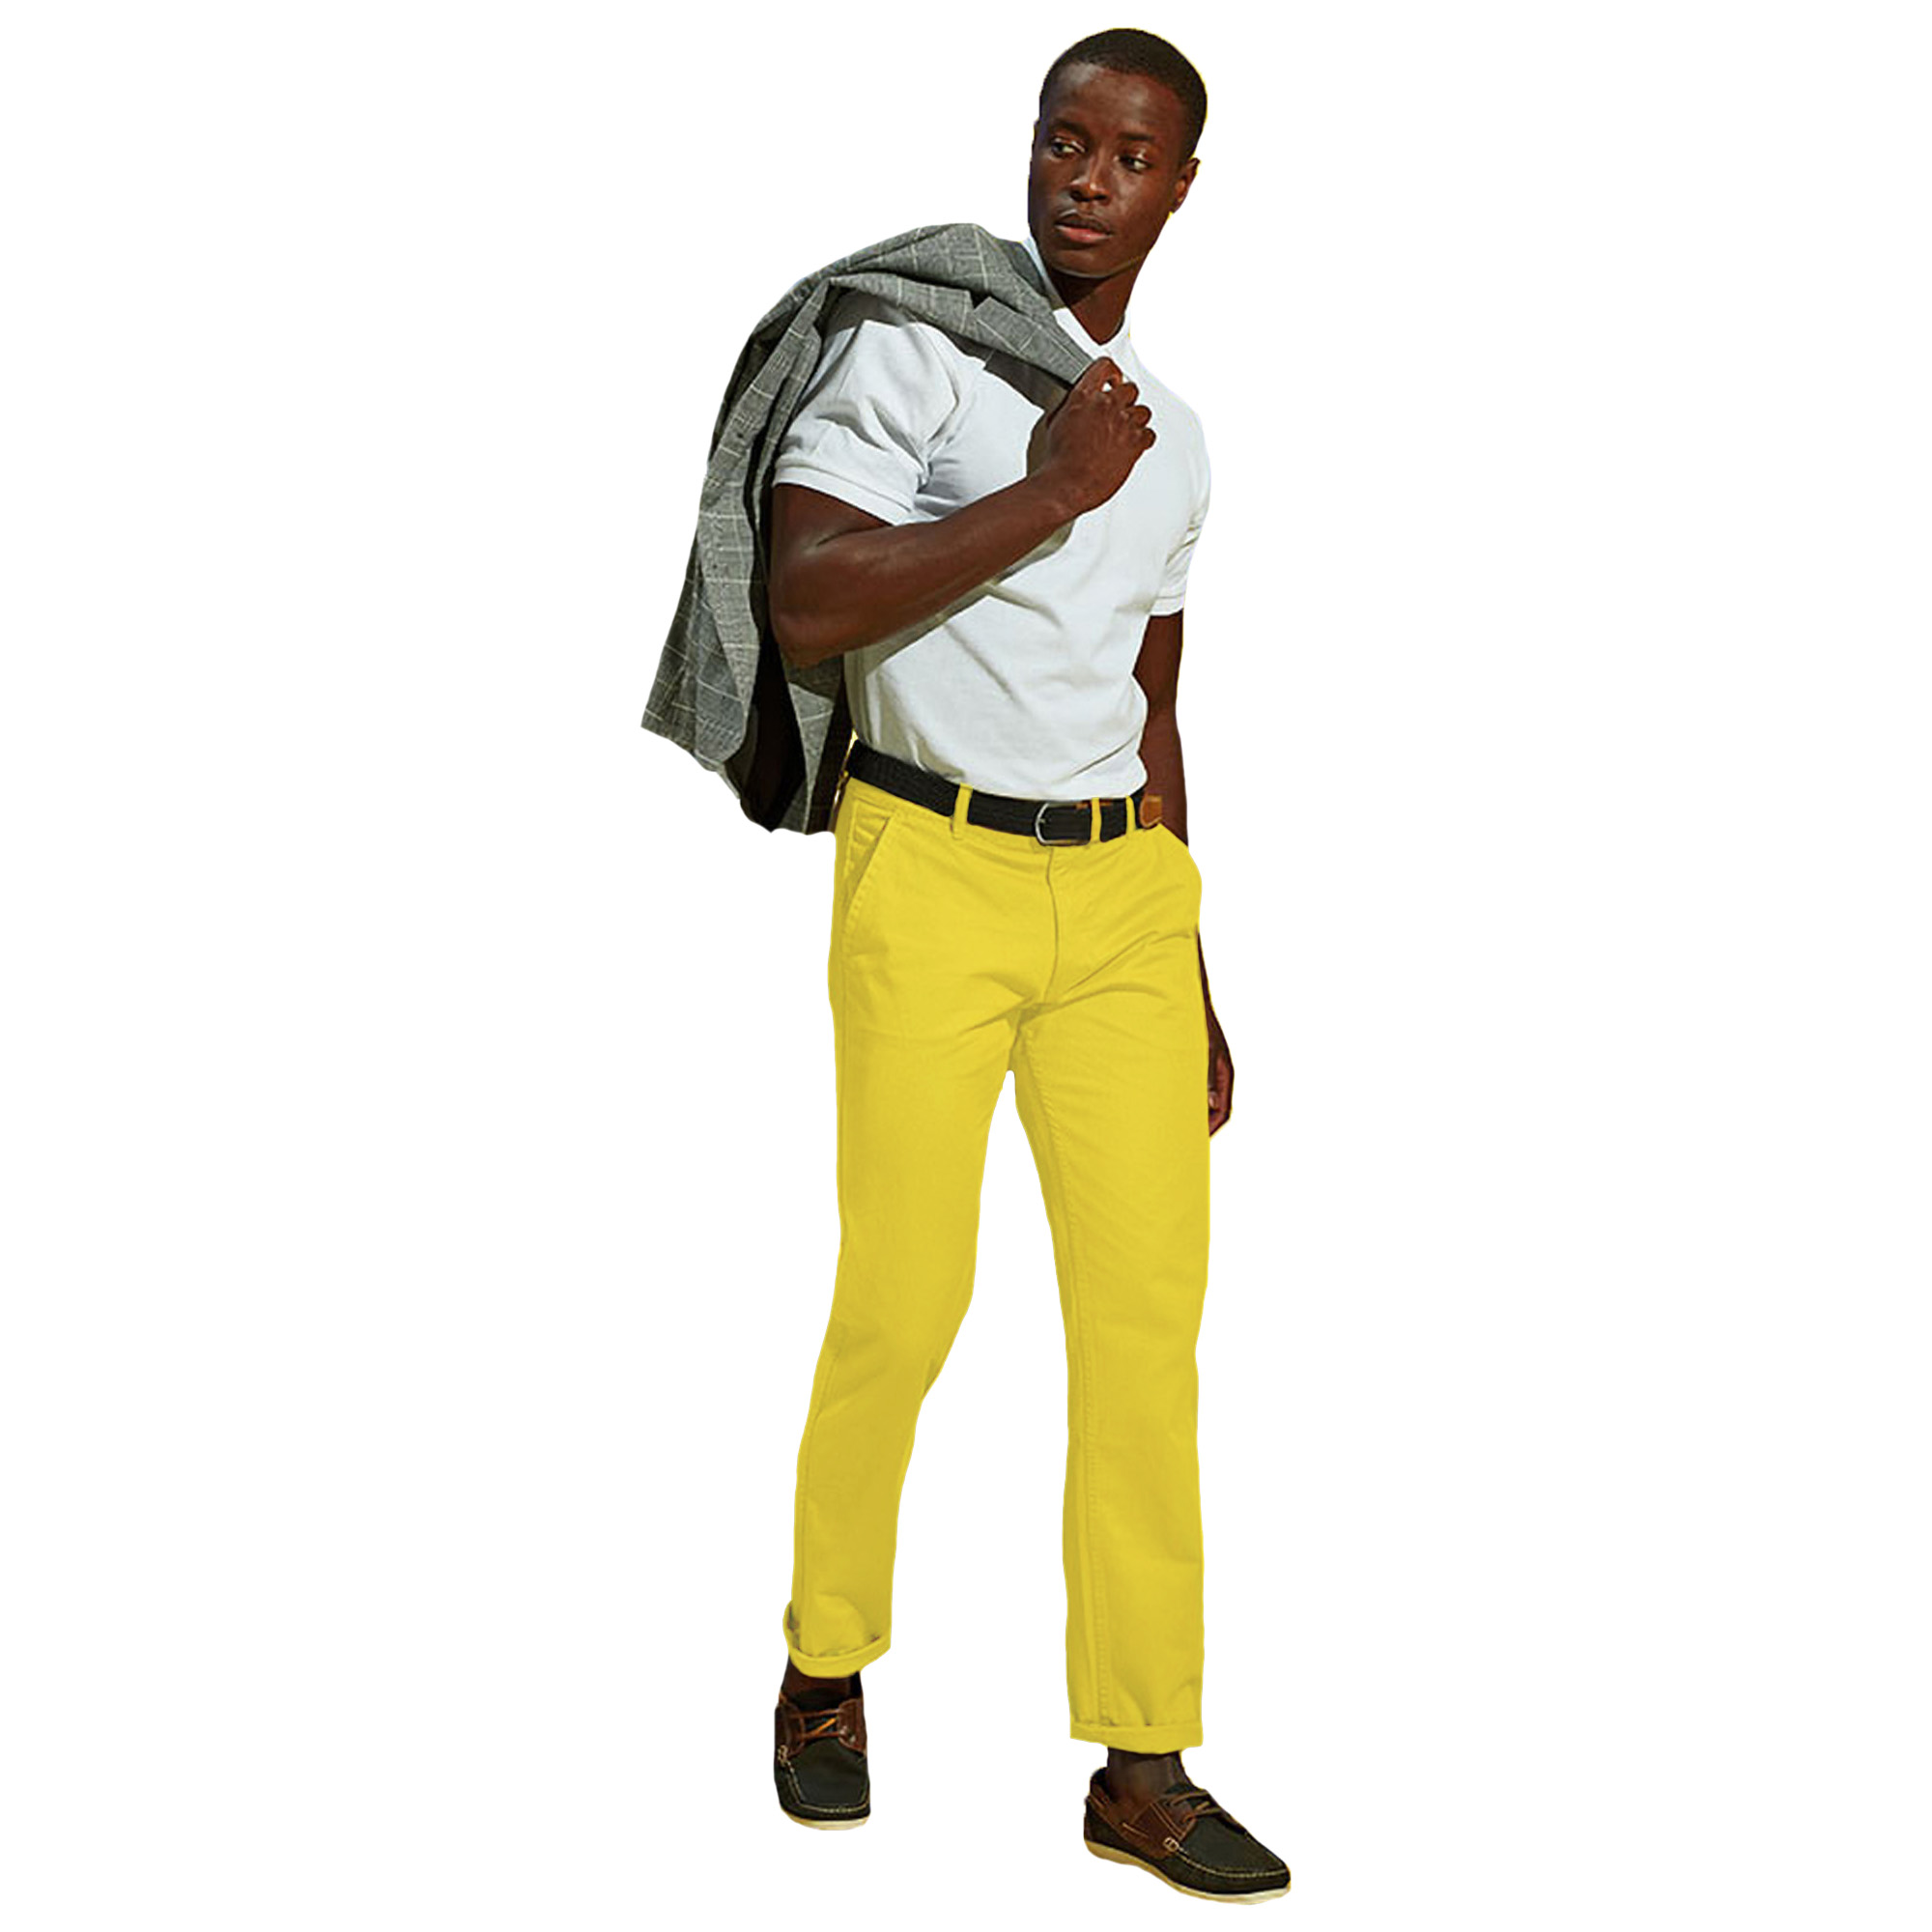 Asquith-amp-Fox-Pantalones-chinos-casuales-Modelo-Classic-para-hombre-caballero